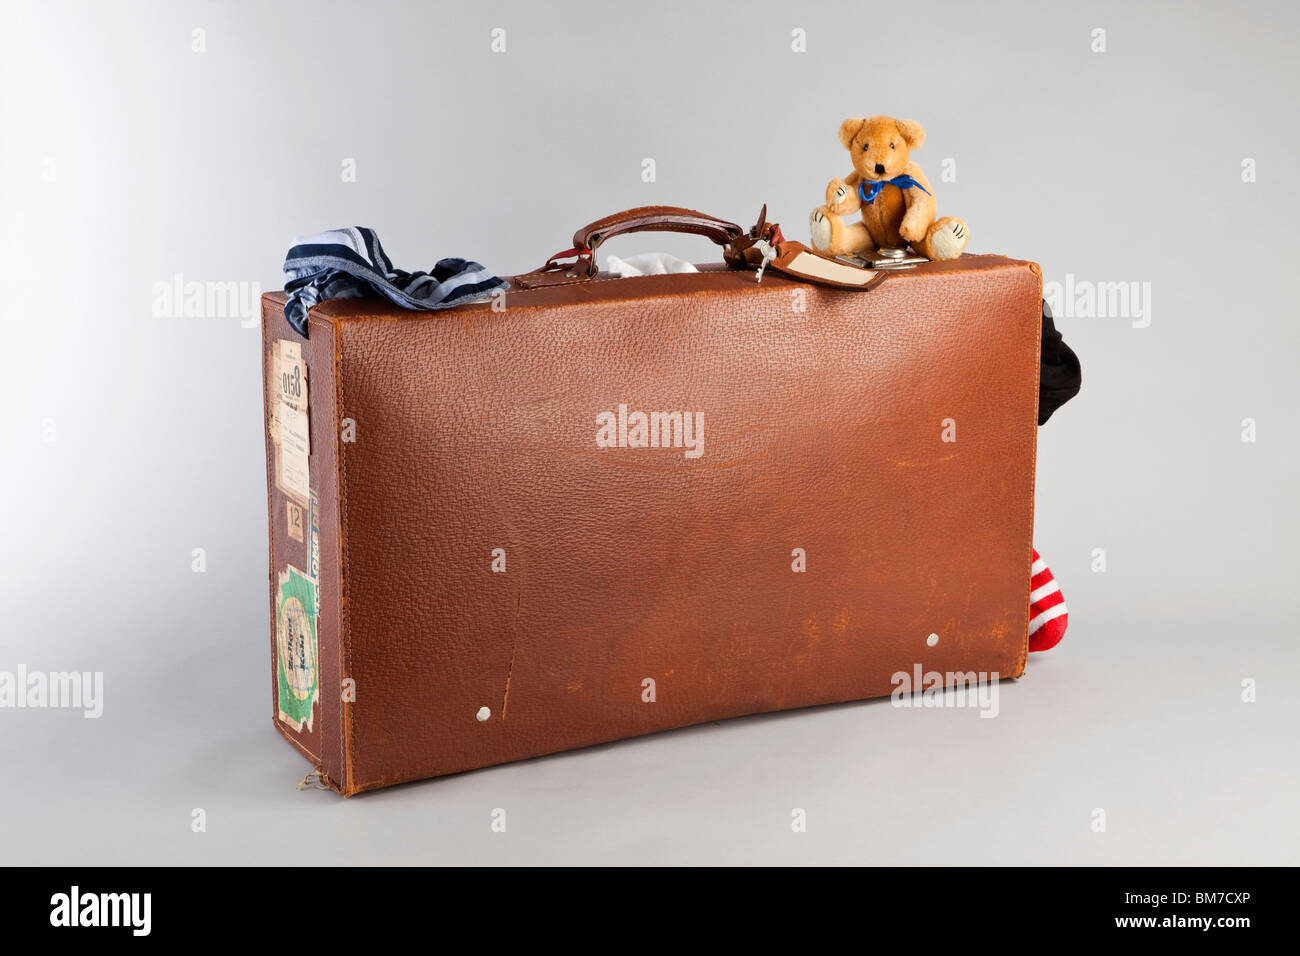 Old Suitcase Grey Stock Photos   Old Suitcase Grey Stock Images - Alamy f3ff55a8bdc7a